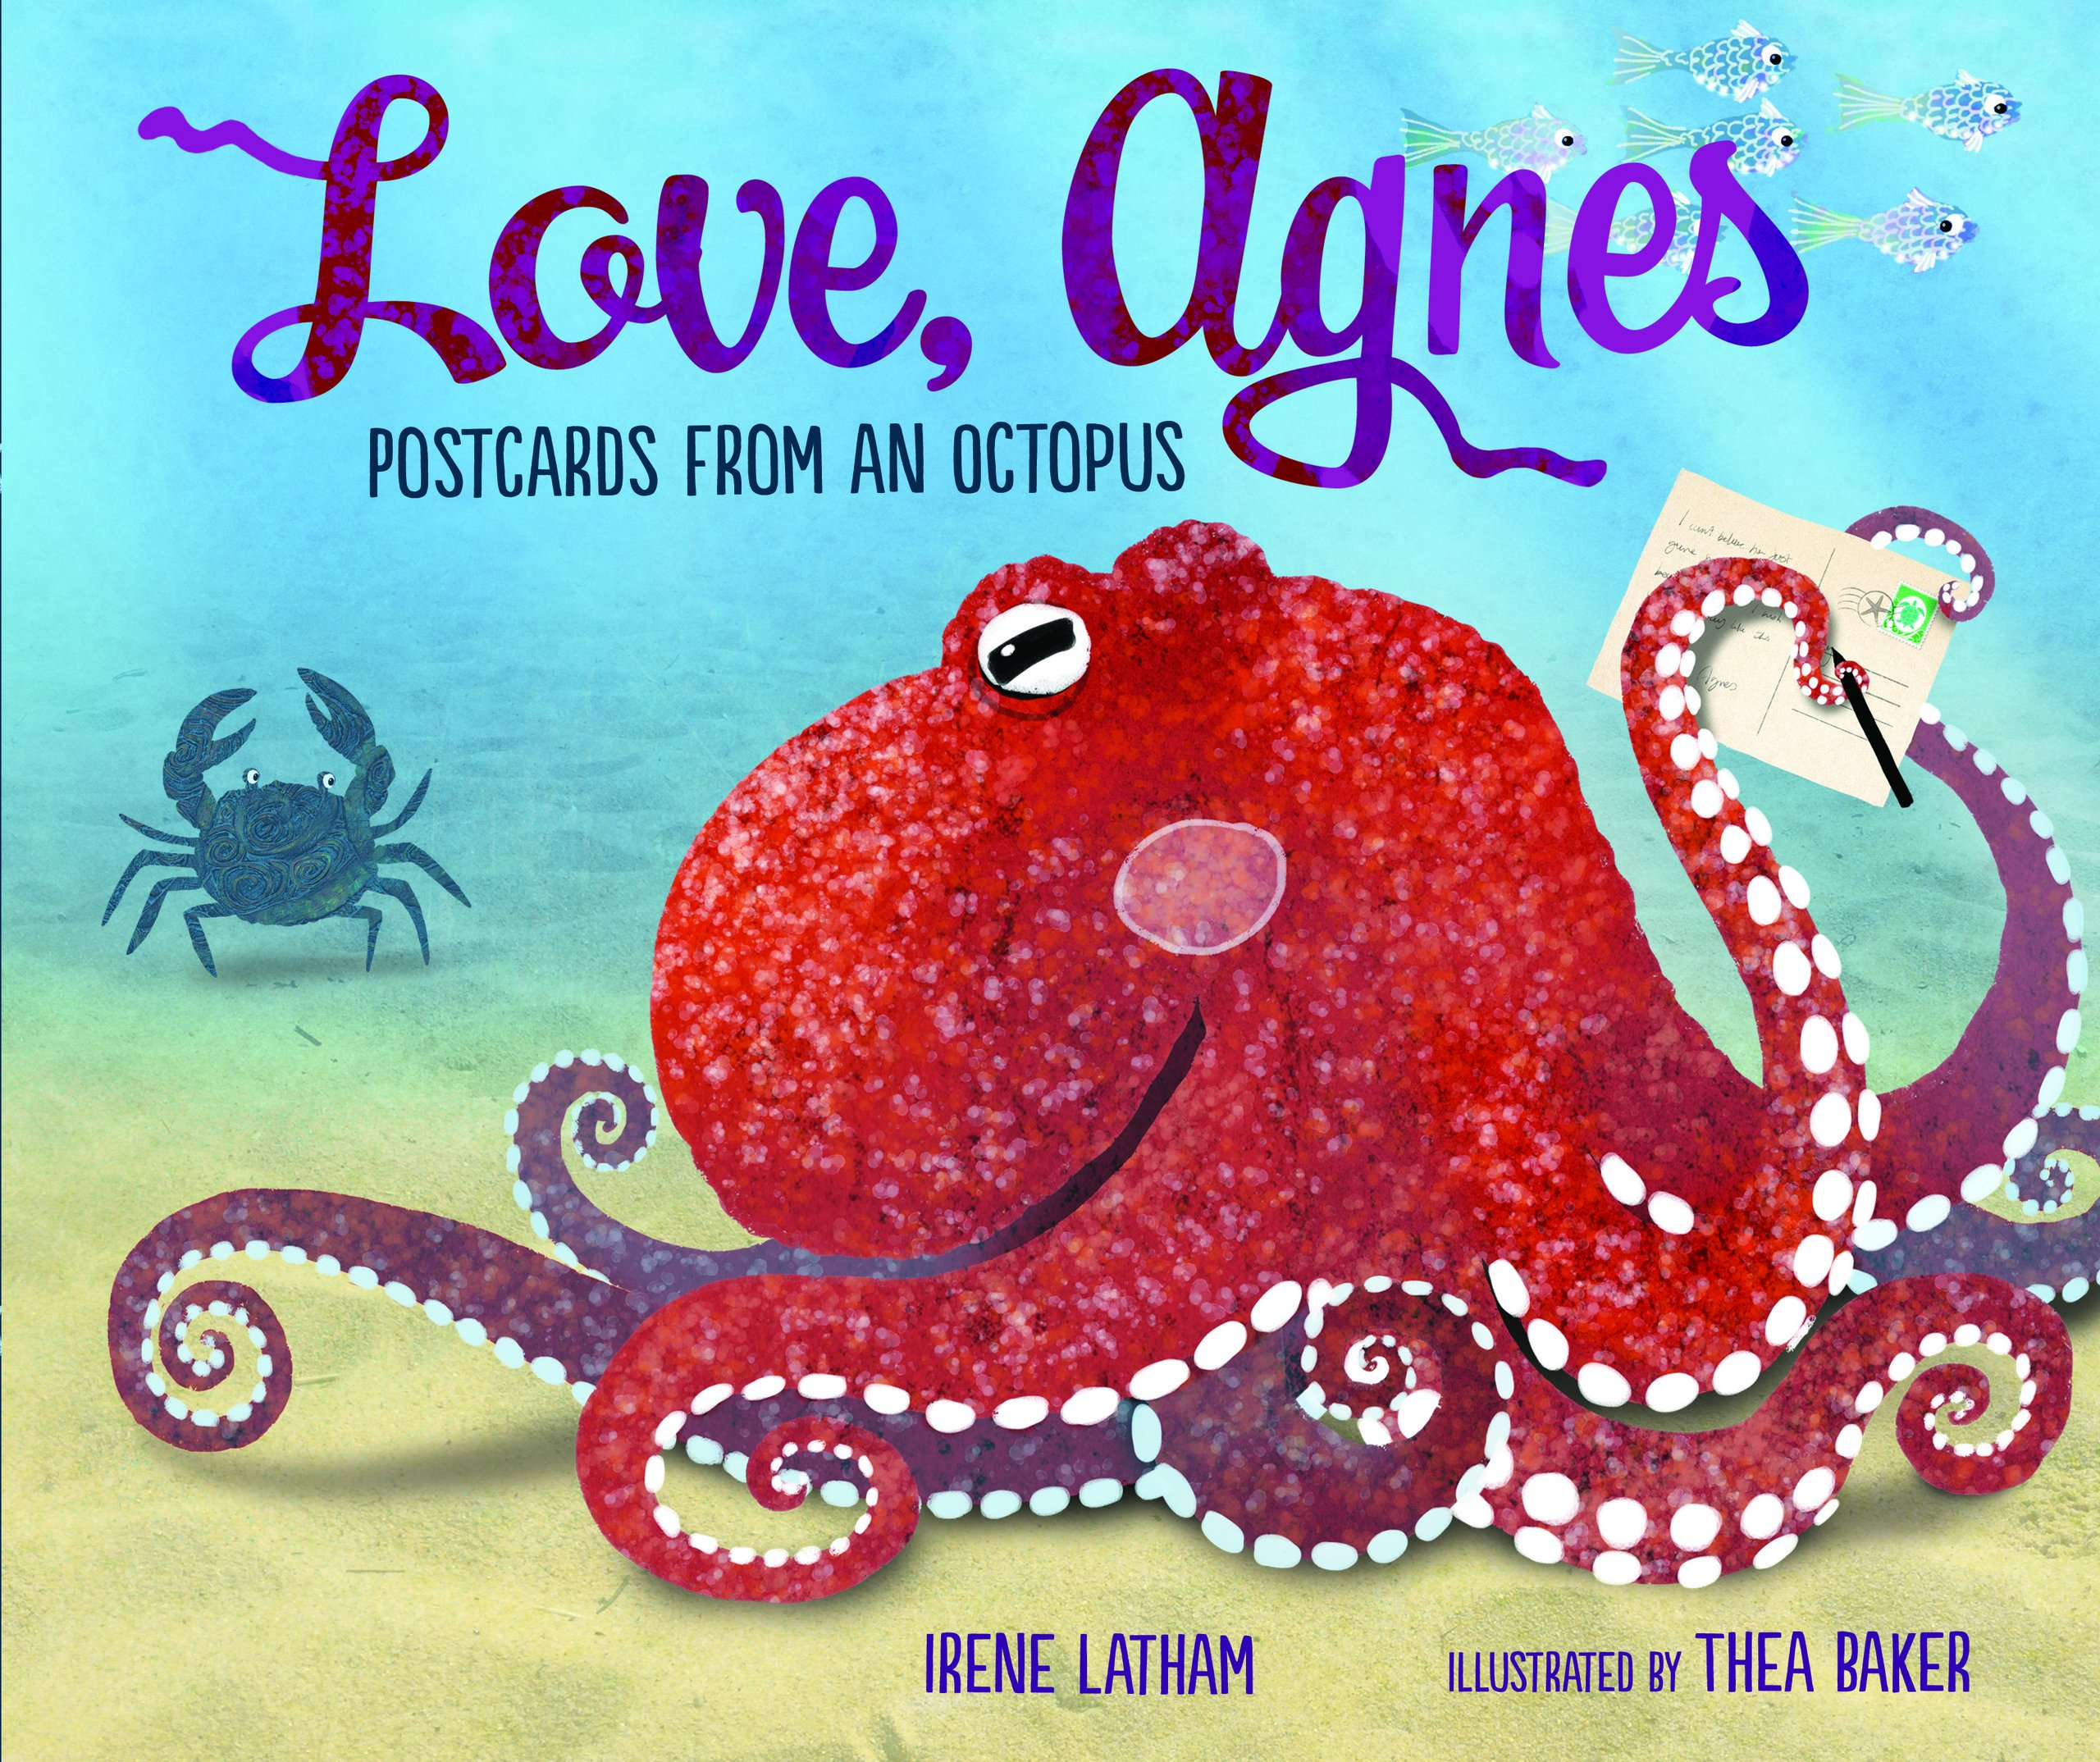 Love, Agnes: Postcards from an Octopus: Irene Latham, Thea Baker